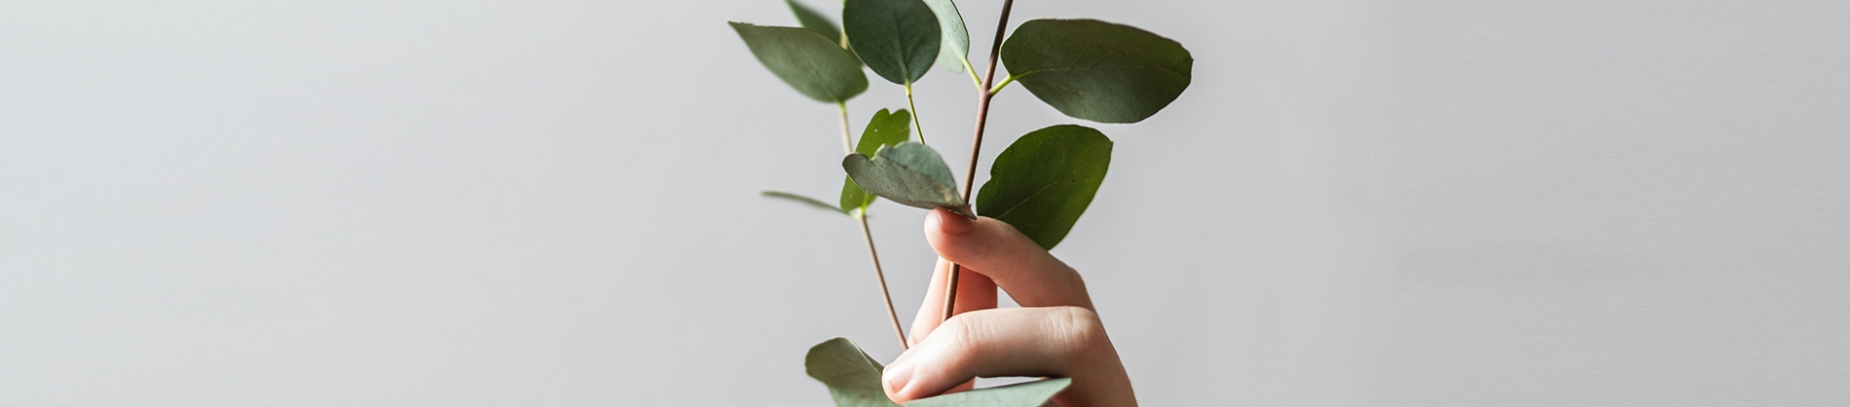 A hand holding up a plant against a grey background